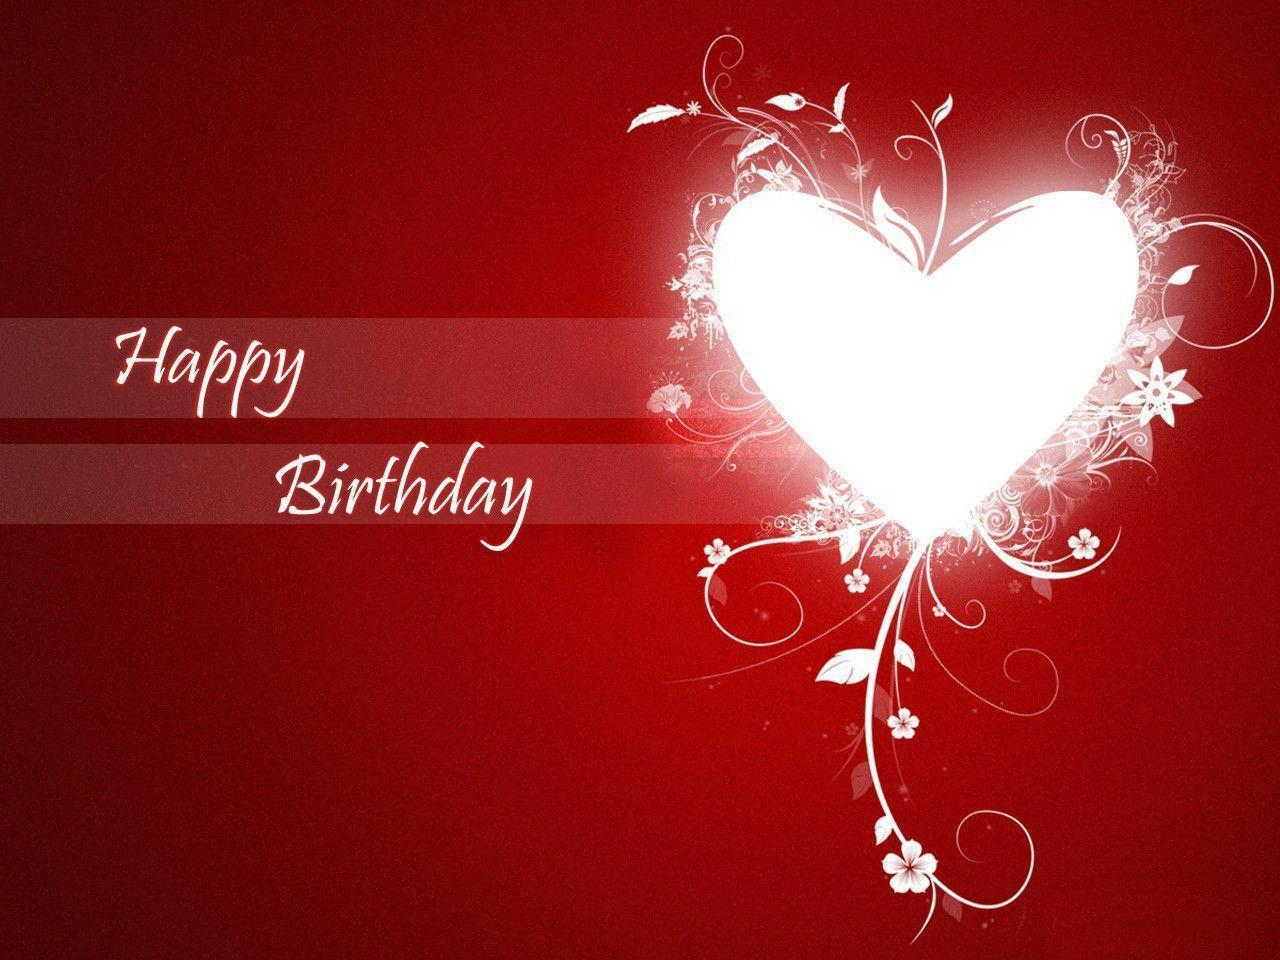 Love You Birthday Wallpaper : Happy Birthday Love Wallpapers - Wallpaper cave